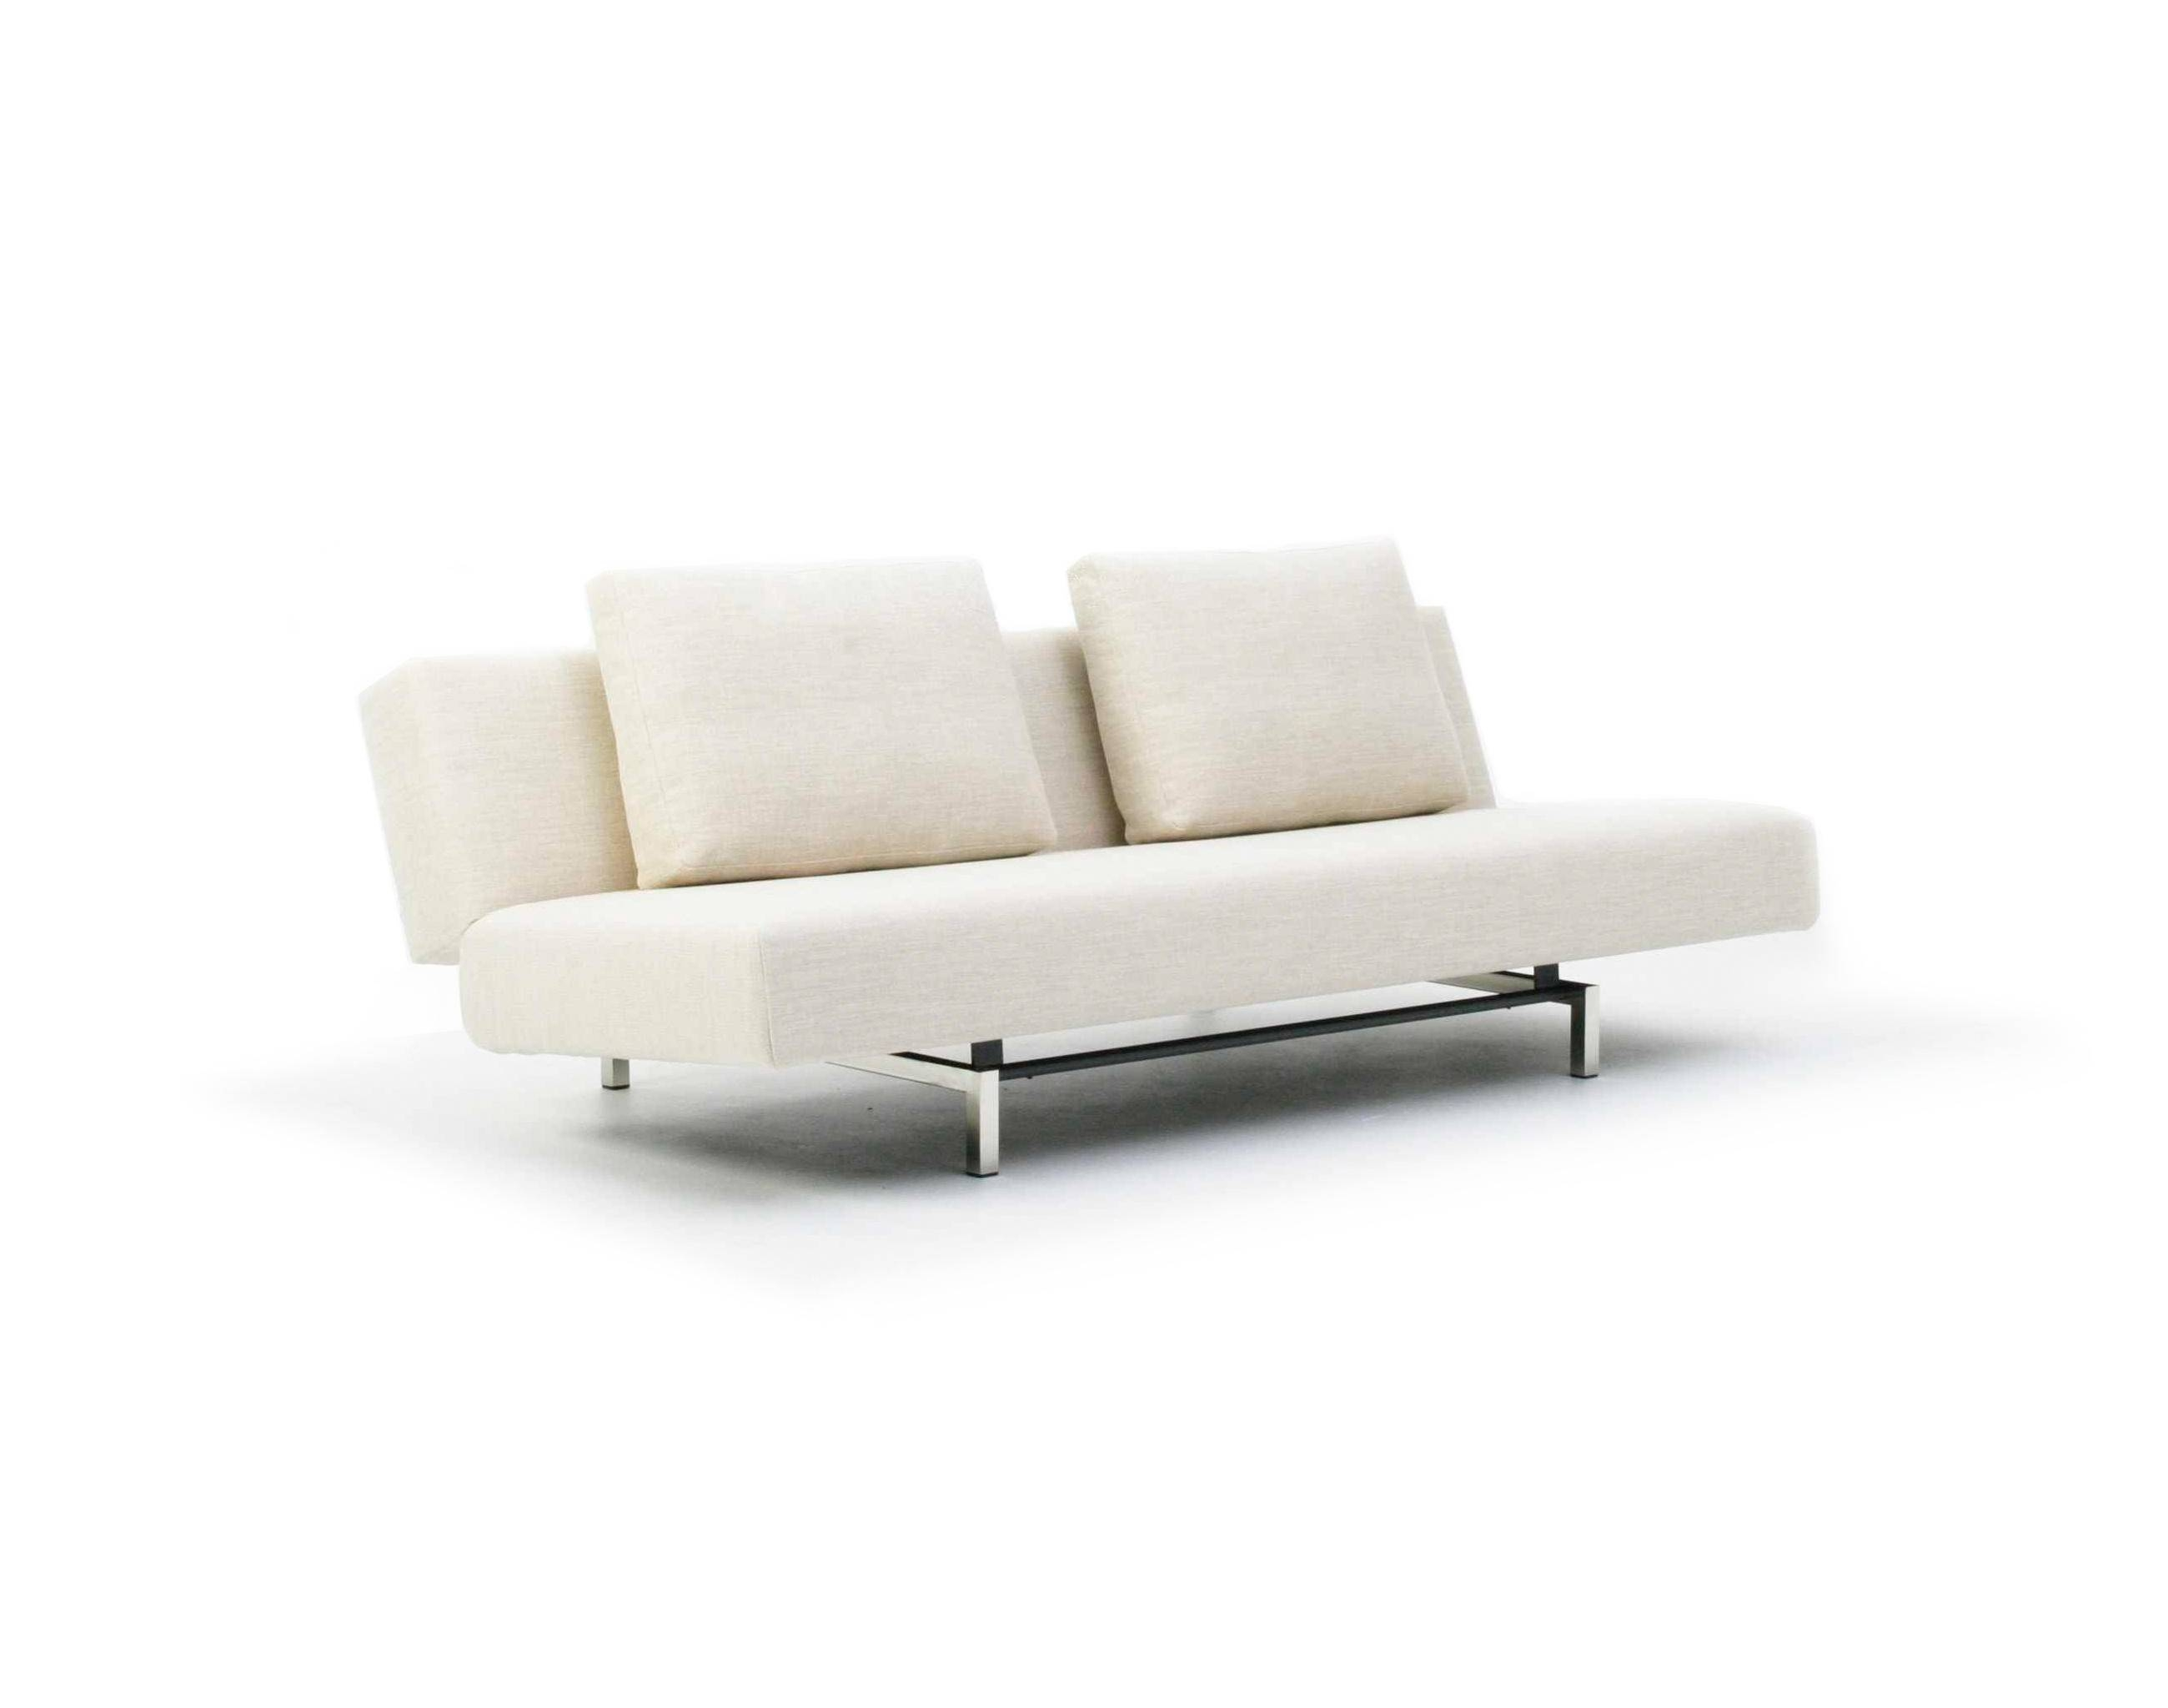 Sleeper - Sofa Beds From Bensen | Architonic pertaining to Bensen Sofas (Image 14 of 15)